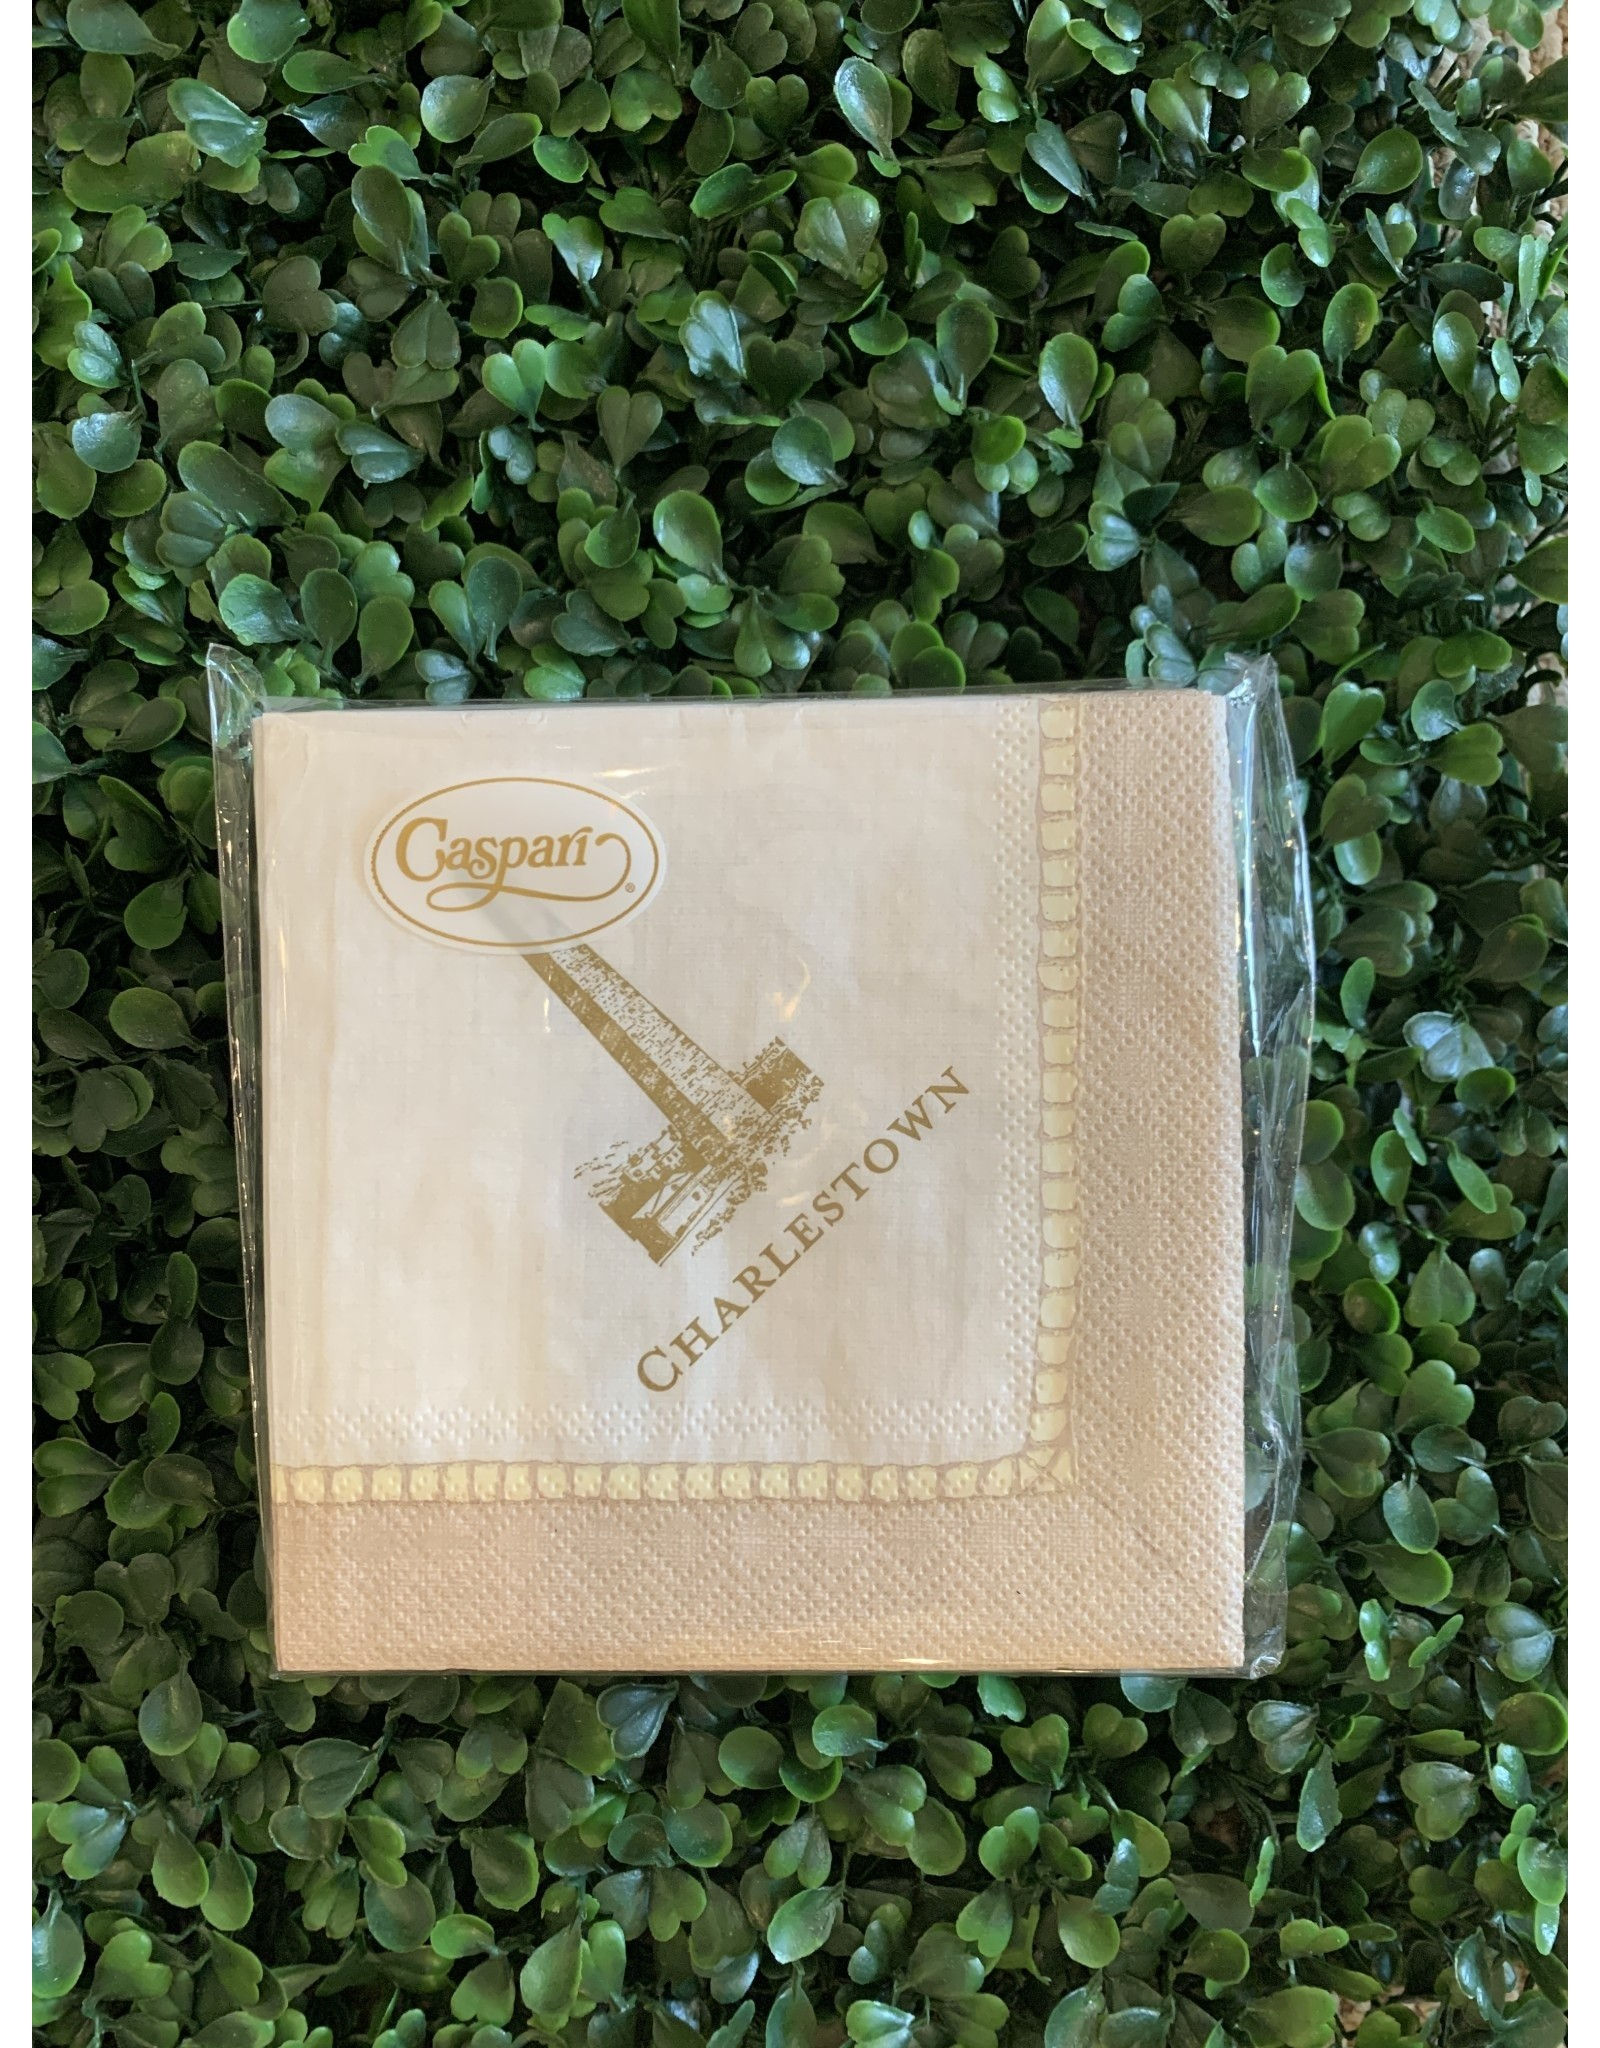 Caspari Linen and Gold Monument Napkin